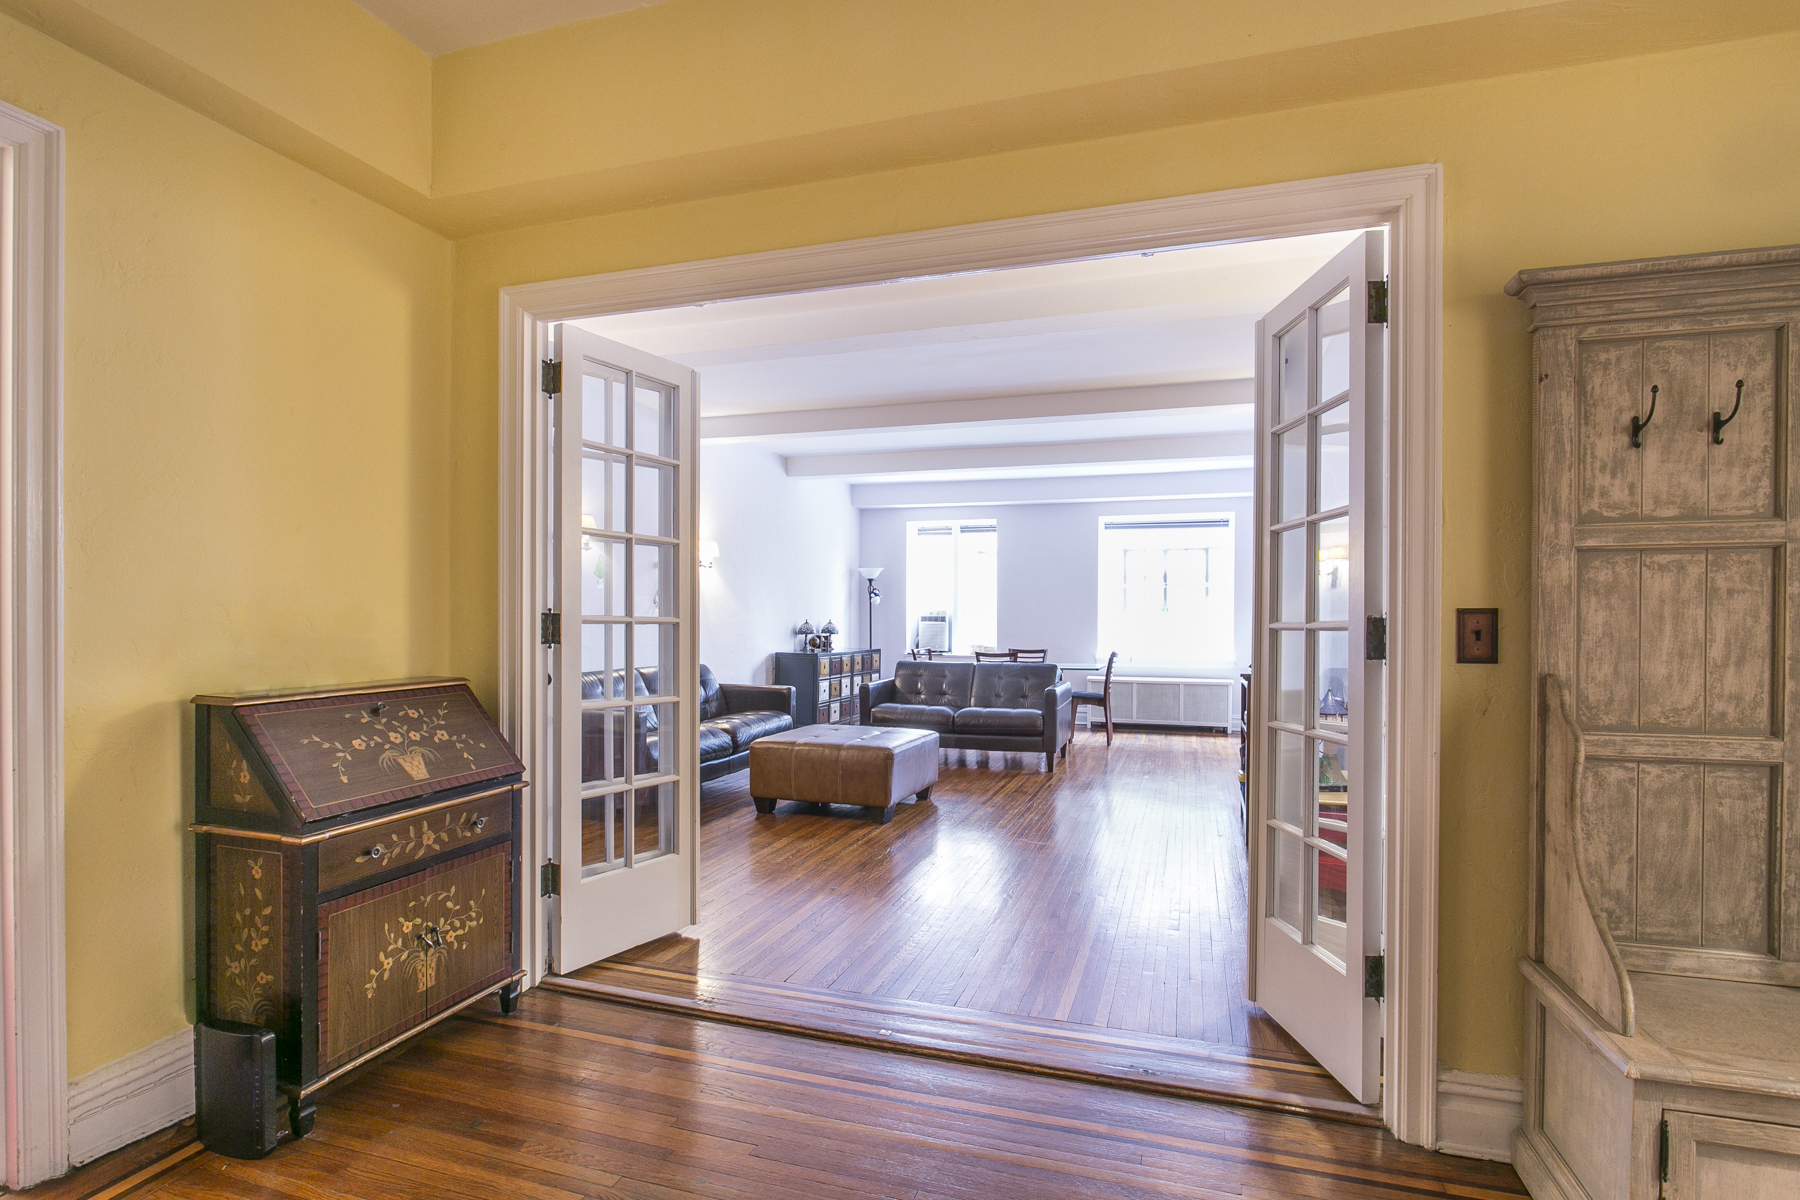 """Additional photo for property listing at """"SPACIOUS COOP APARTMENT WITH GARDEN VIEWS"""" 10 Holder Place, Apt 1B Forest Hills Gardens, 森林山, 纽约州 11375 美国"""